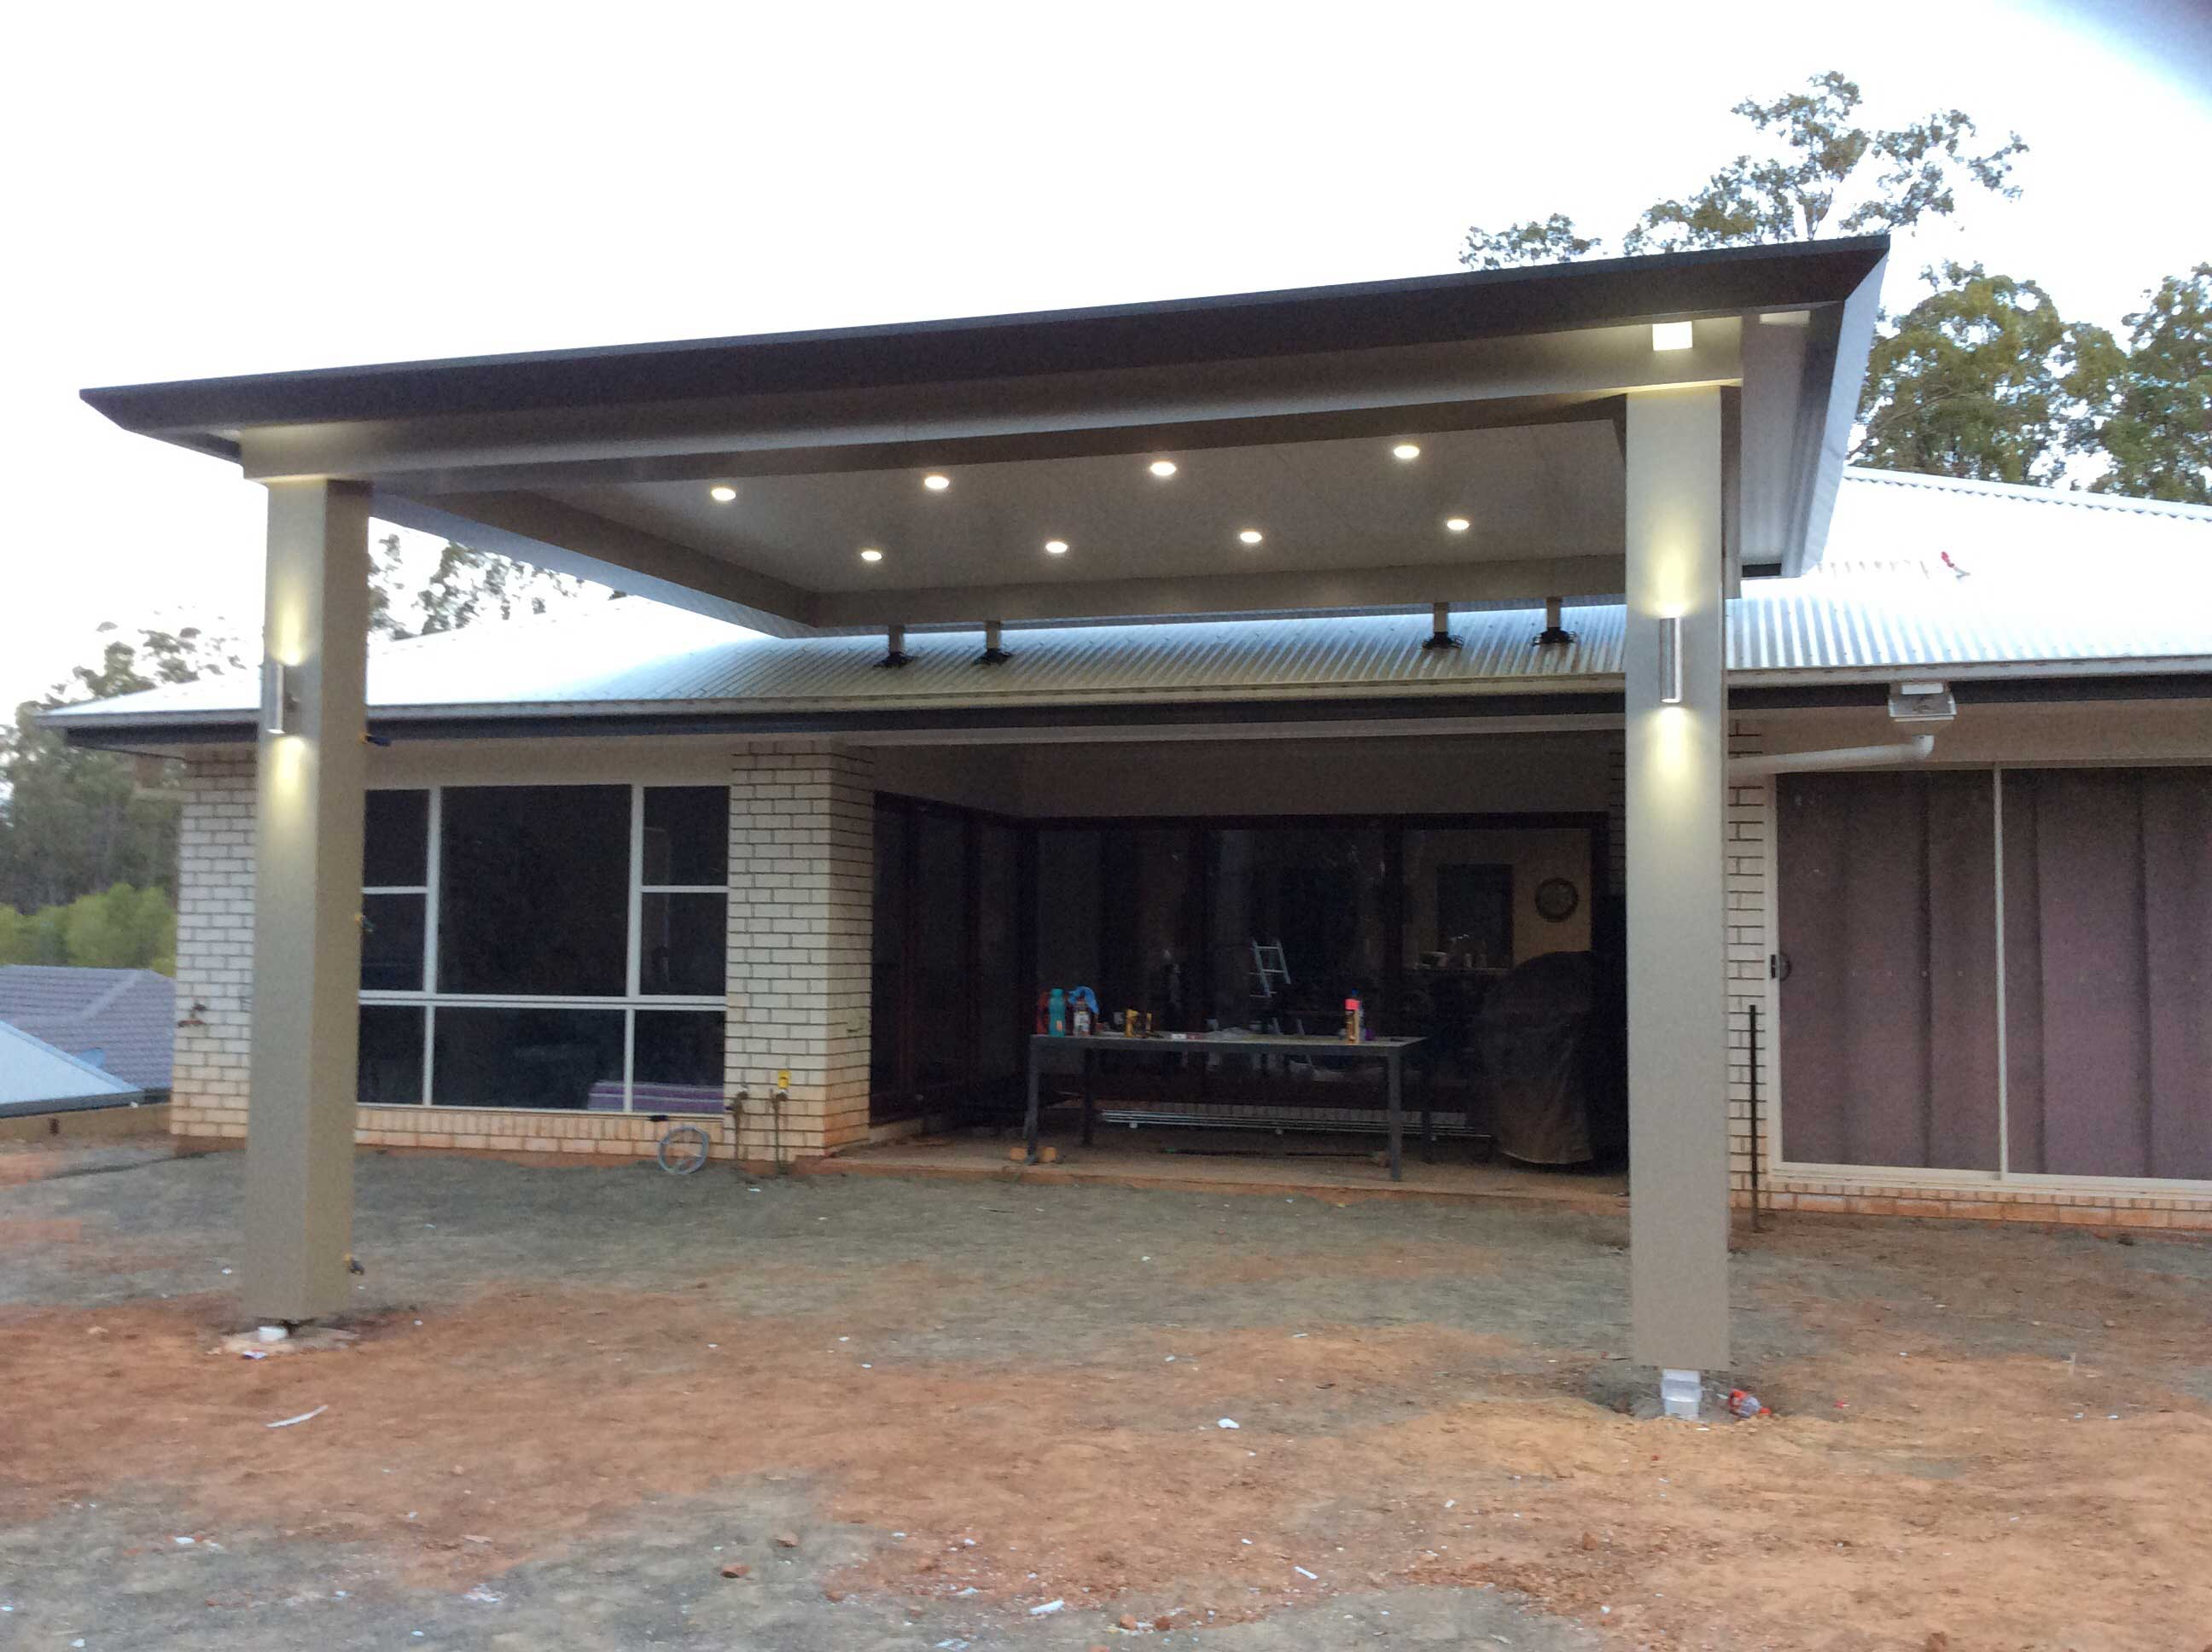 Adaptit build the first Queensland Stratco Pavilion!